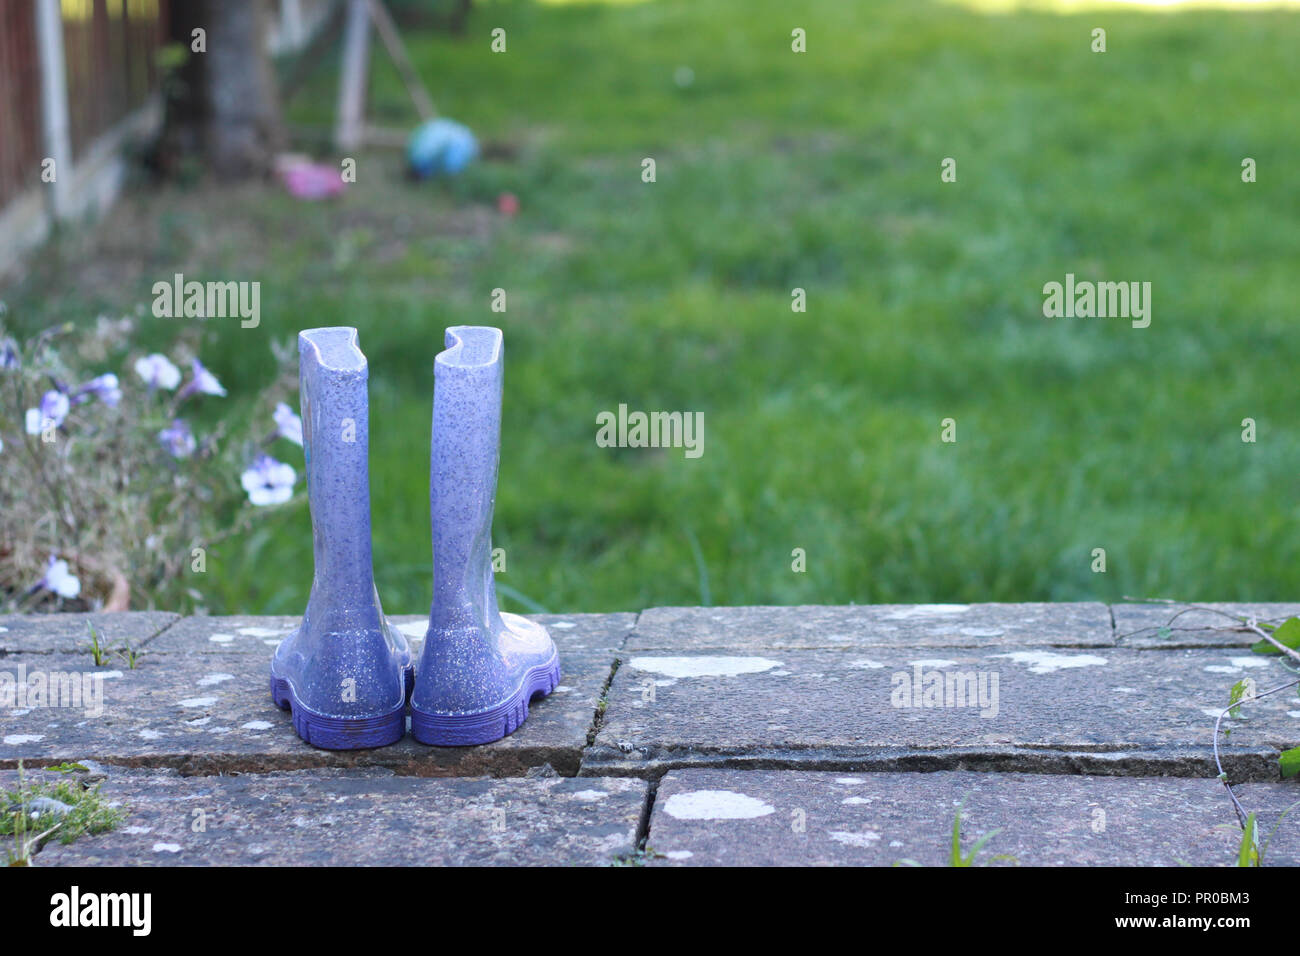 Child's purple welly boots on a step in a garden. Stock Photo